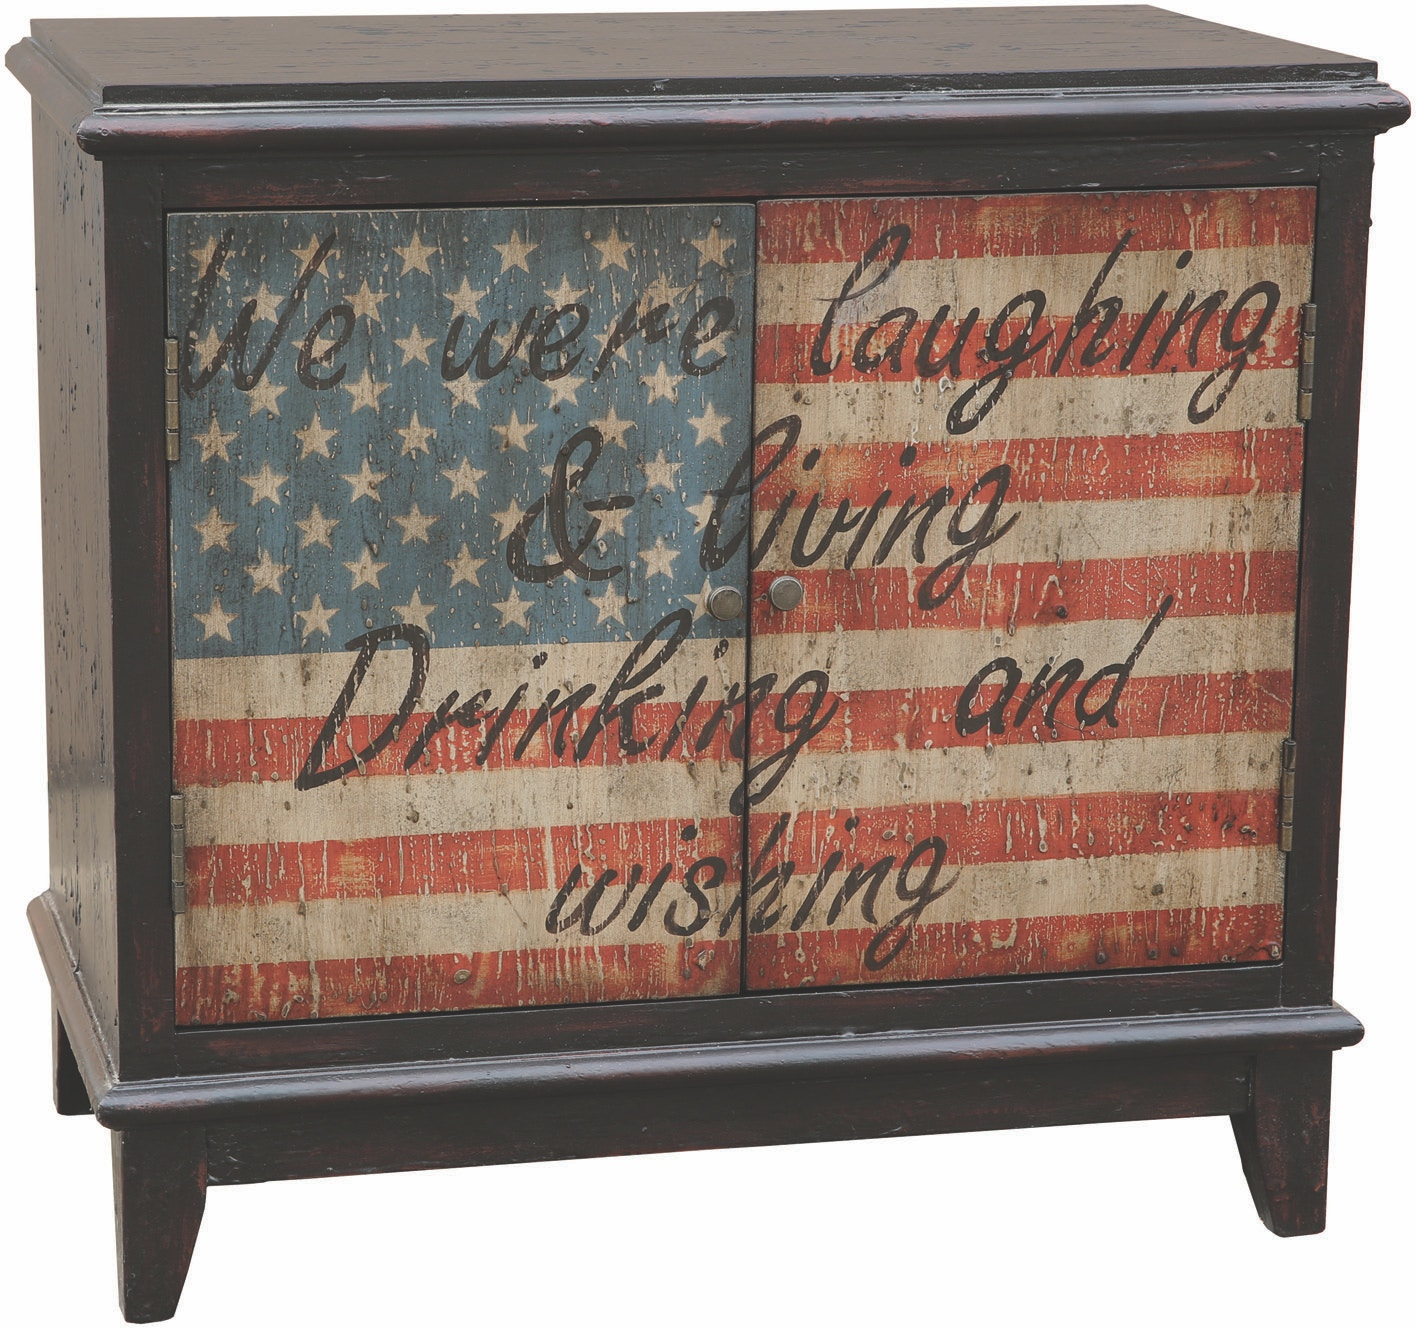 Brand new Pulaski Furniture Bar and Game Room American Flag Bar Cabinet  GV41